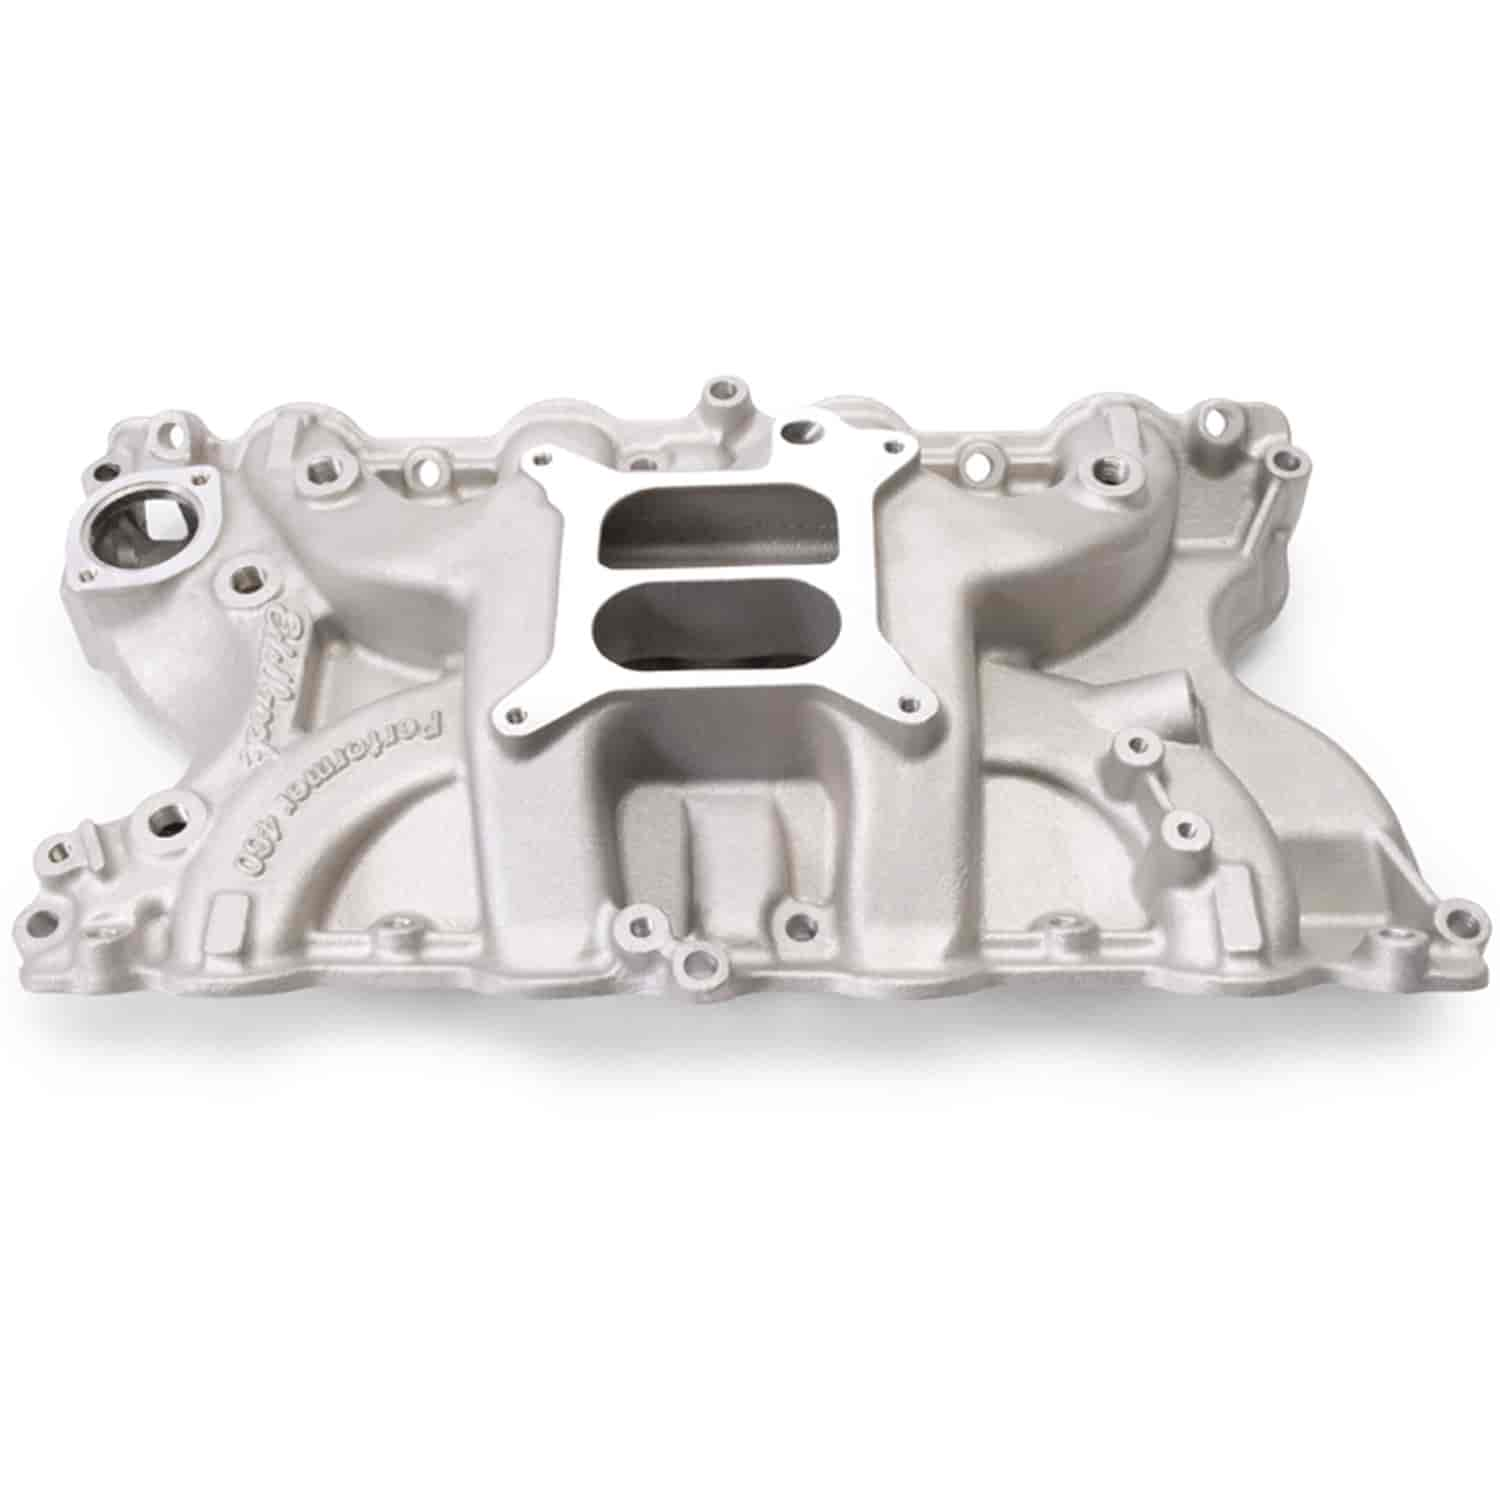 Edelbrock 3766 - Edelbrock Performer Manifolds for Ford